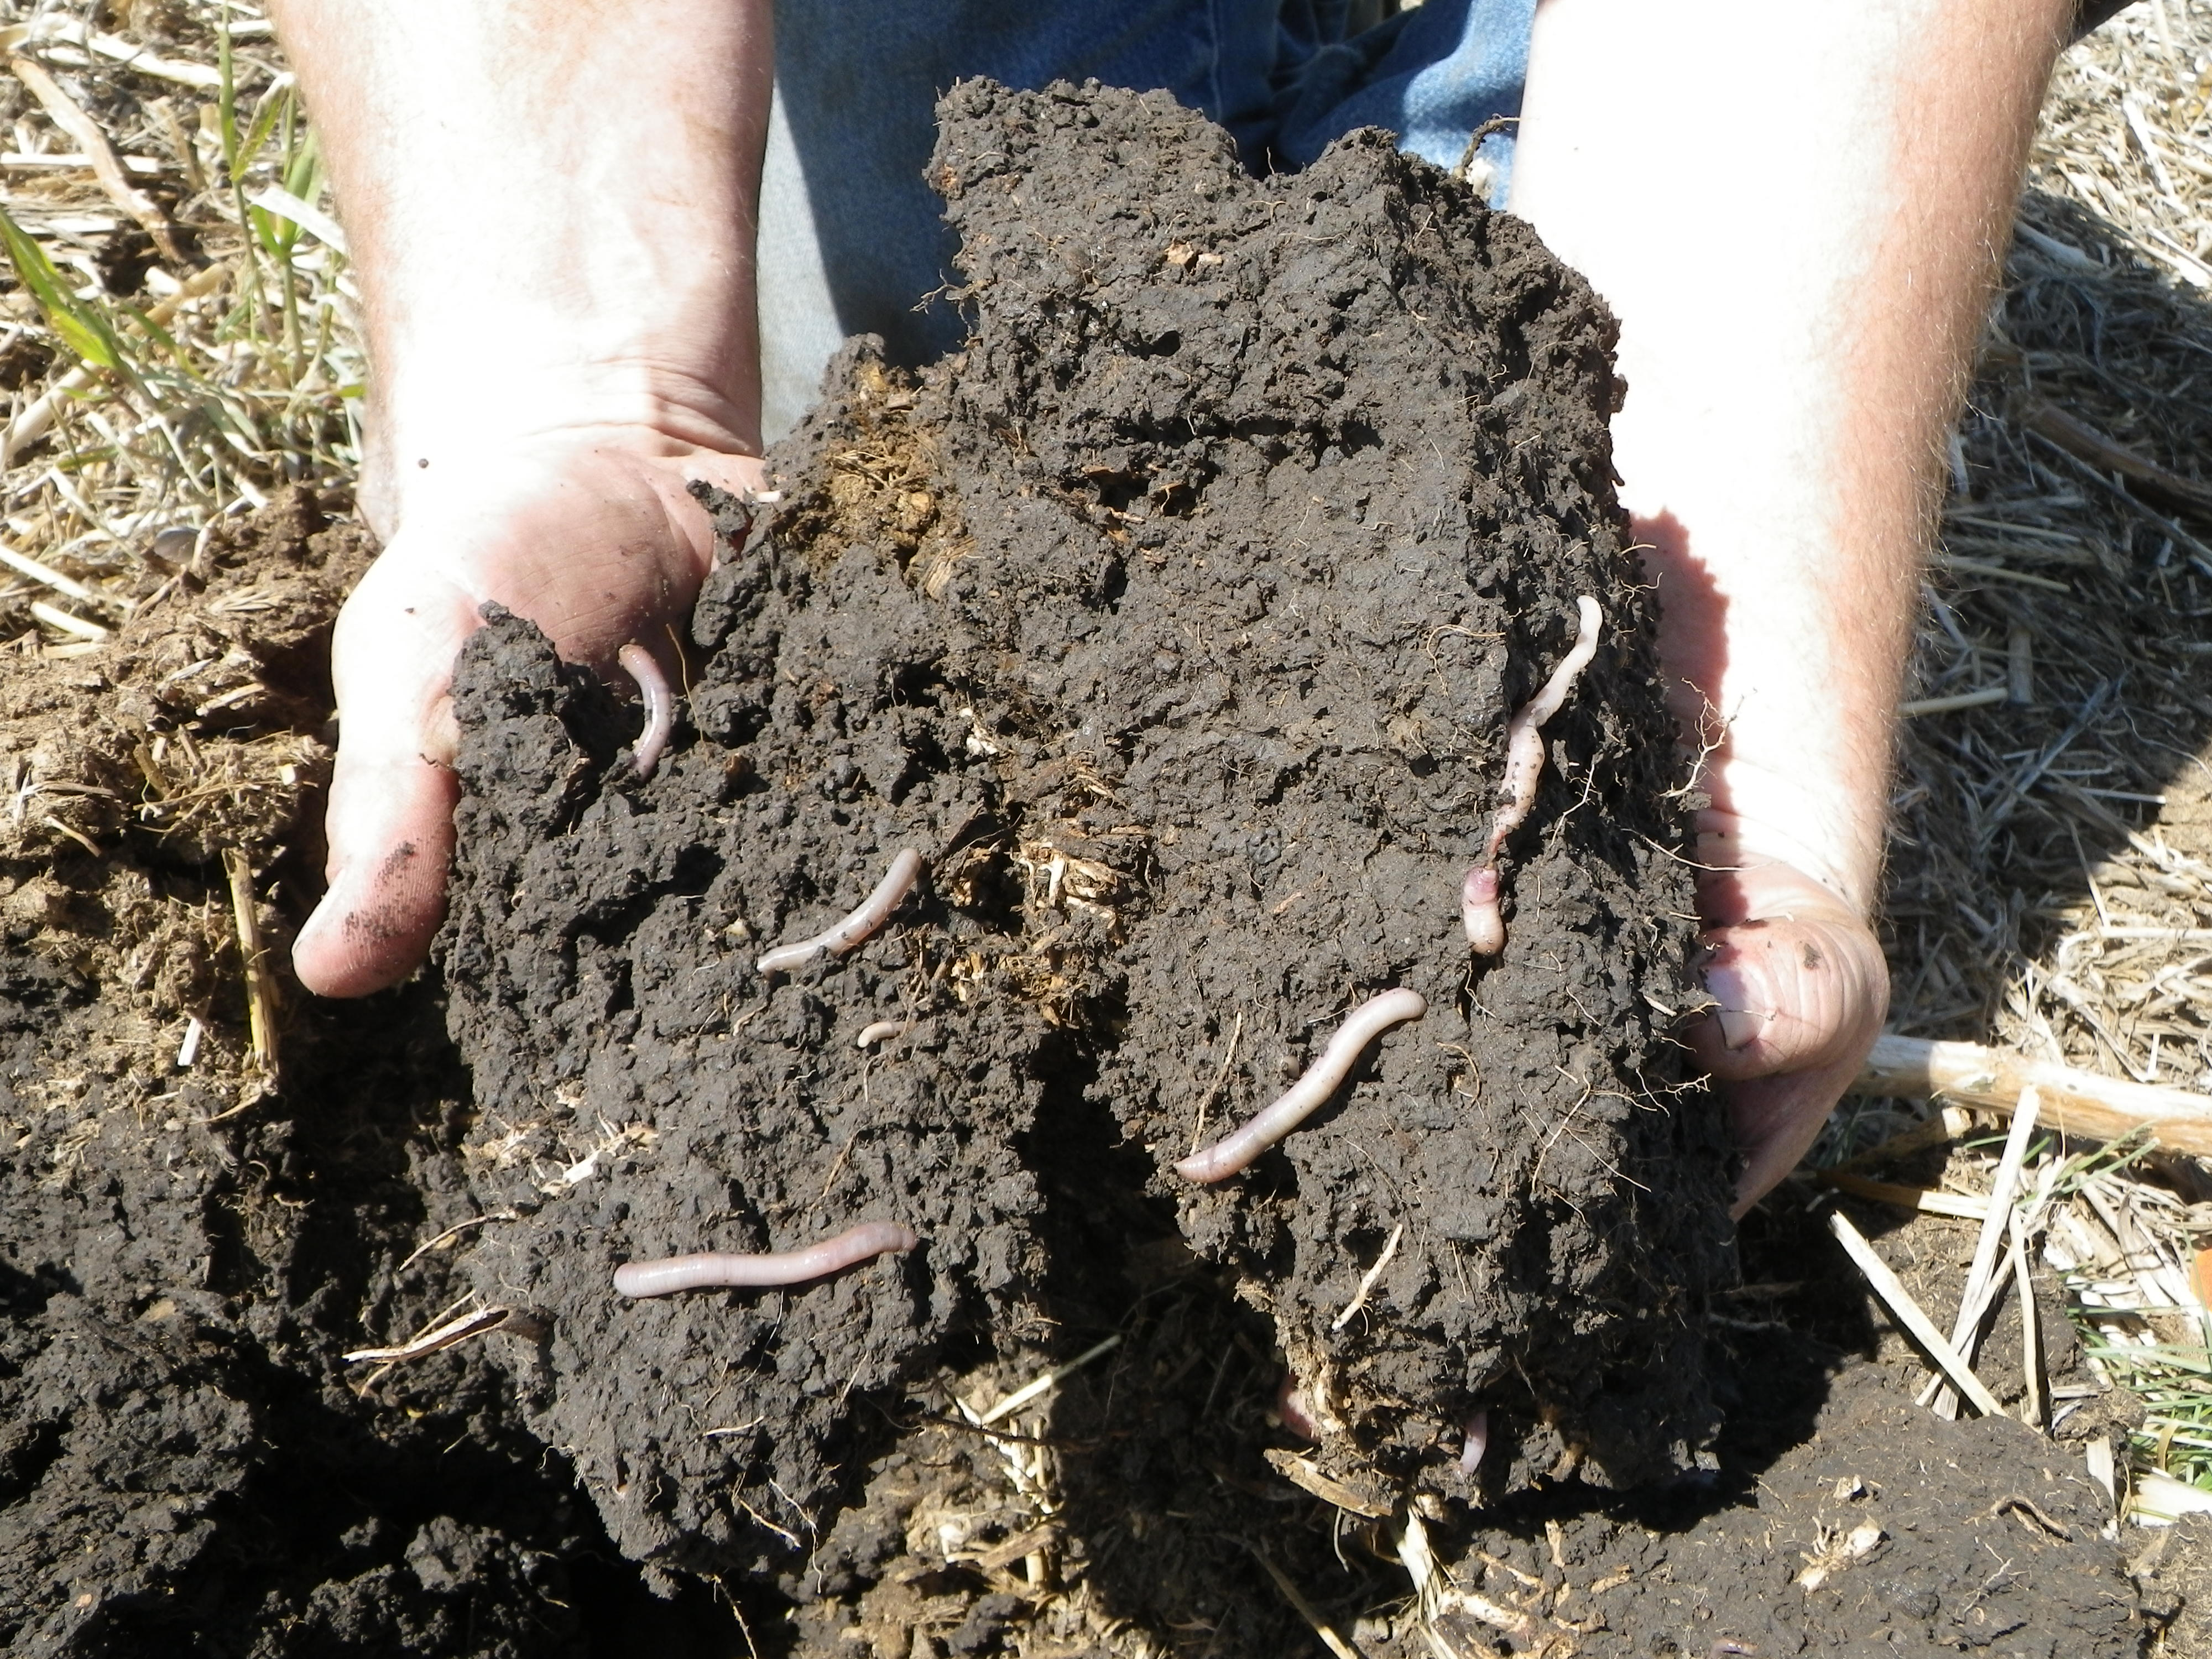 Principle 2: Minimizing soil disturbance